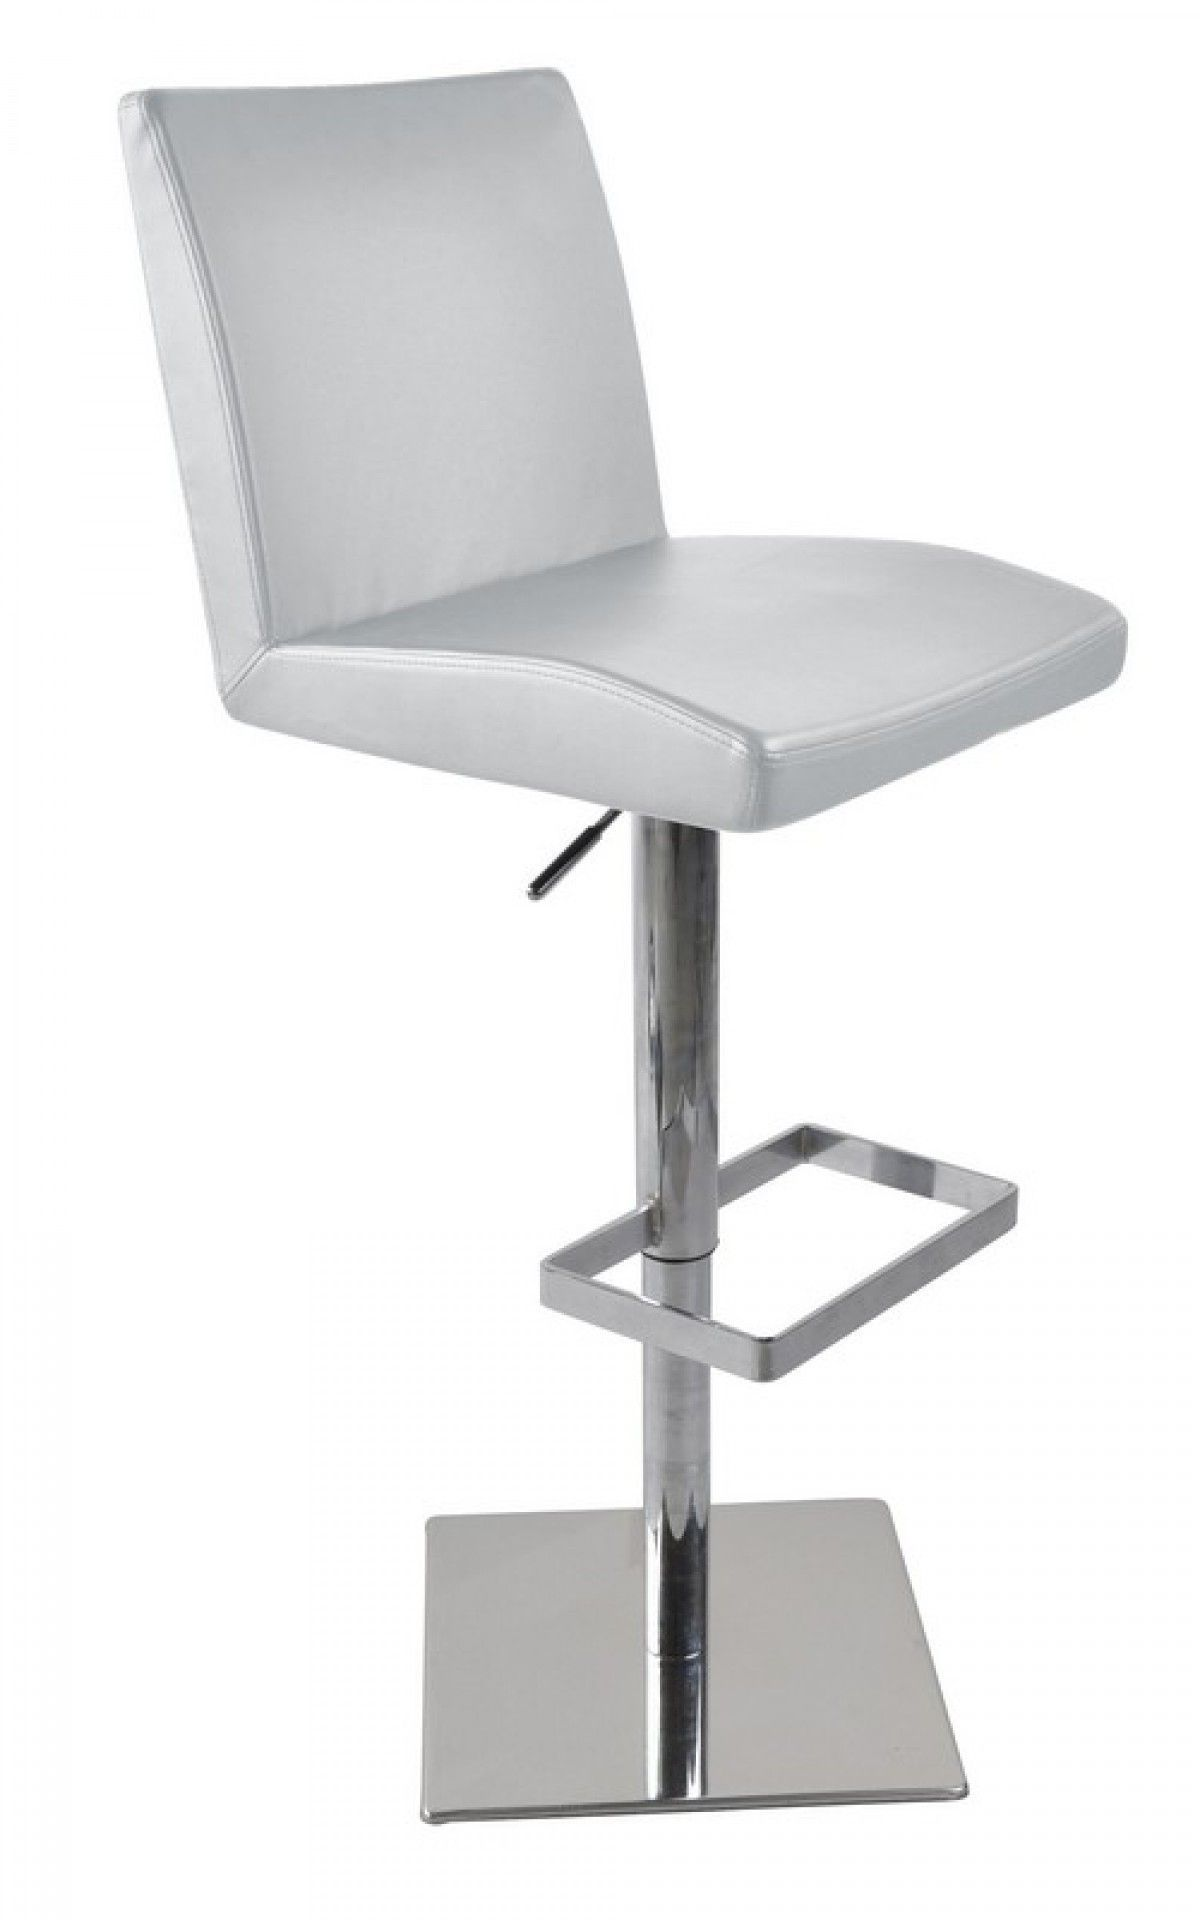 Modrest Modern White Eco Leather Bar Stool Vgcbt1068cn Whtproduct 16172 Features Color Whiteeco Leatherstainless Steel Swivel Base With Bar Stools Stool Leather Bar Stools